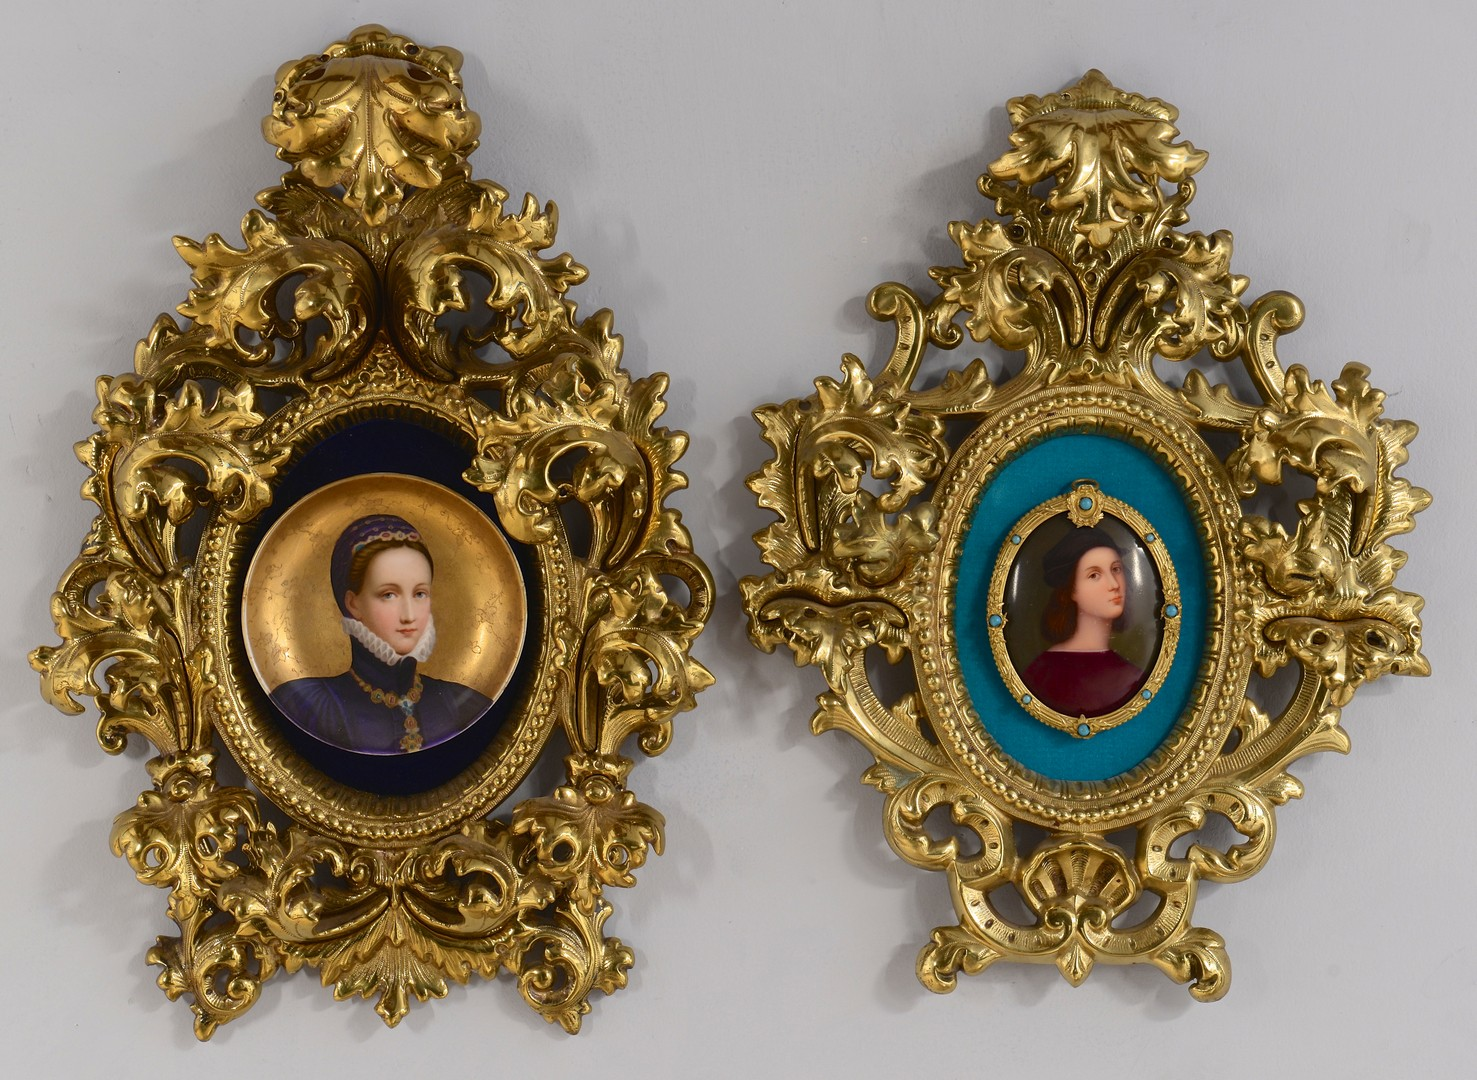 Lot 607: Two Mounted Porcelain Plaques